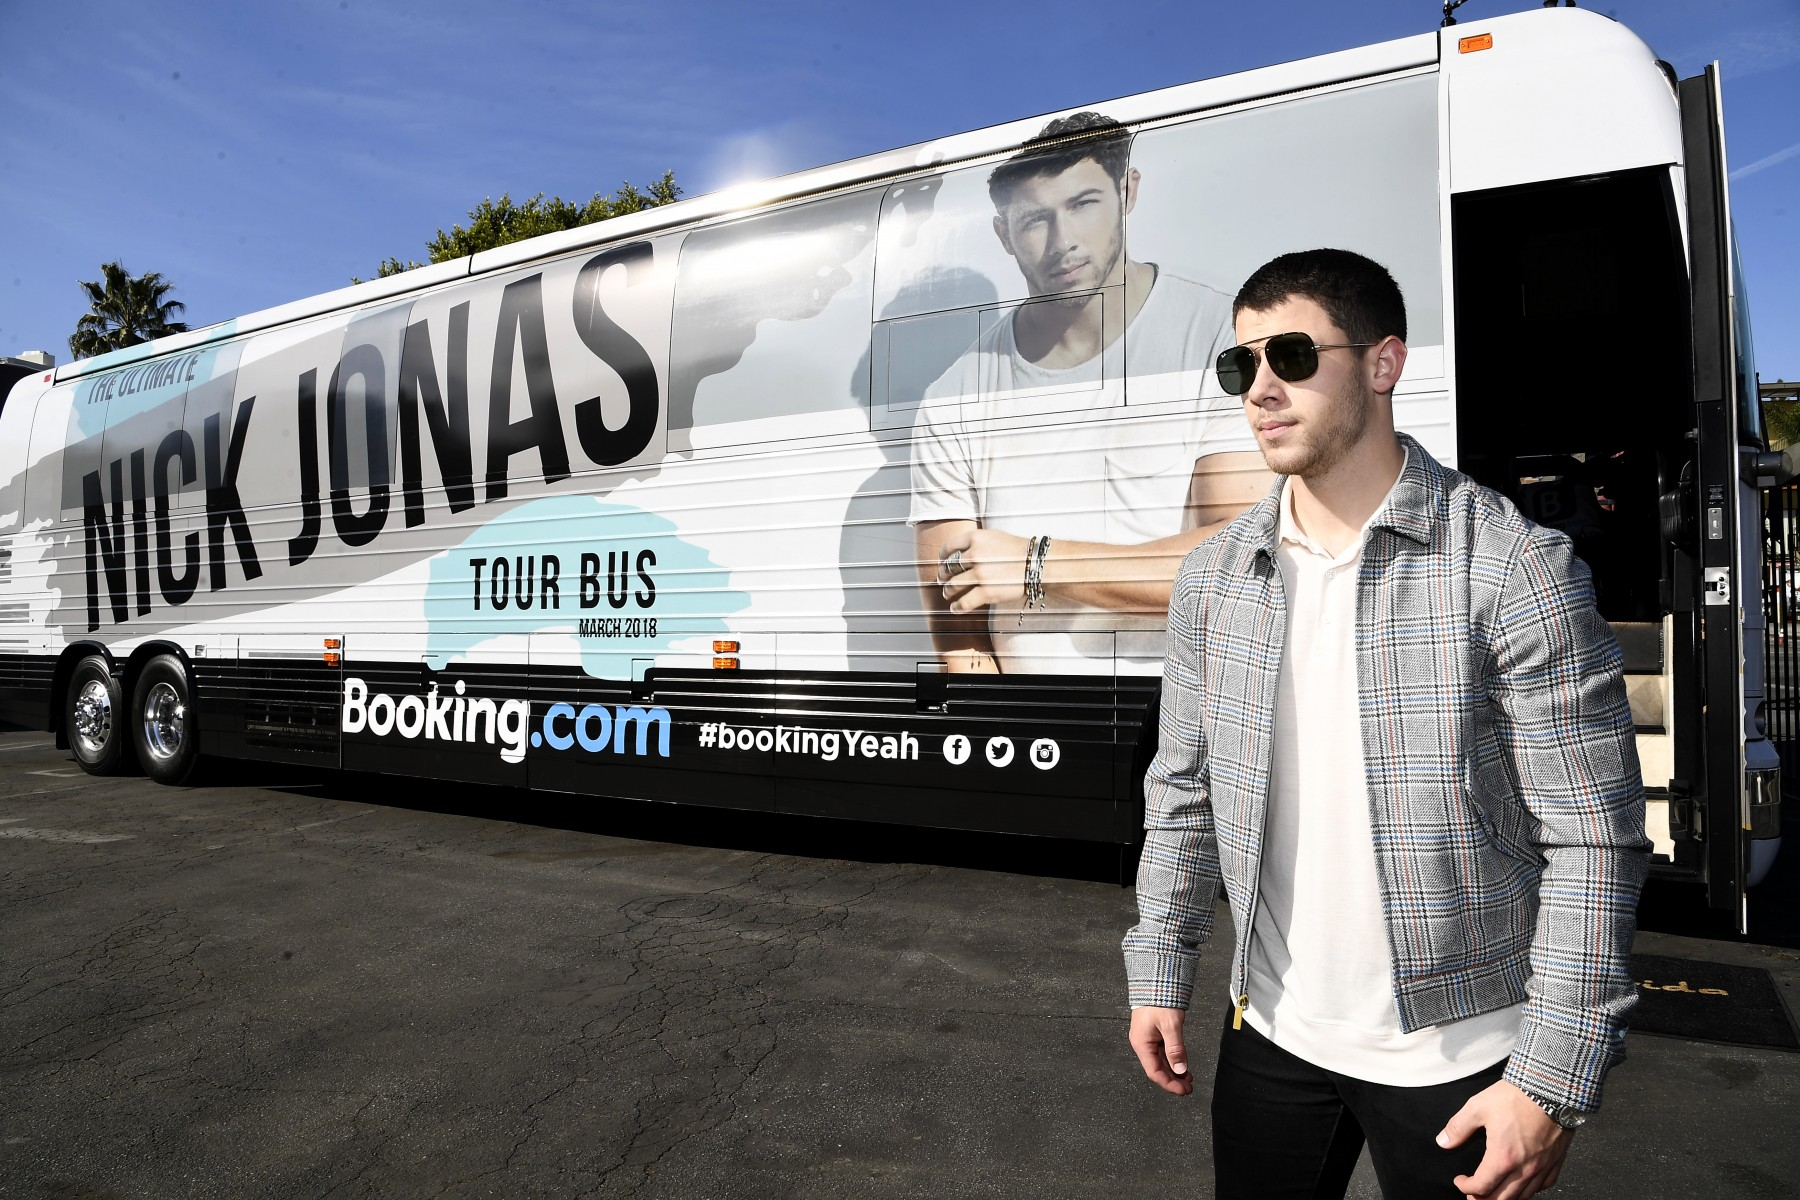 Nick Jonas celebrates the Booking.com 'Book the U.S. List' at his Ultimate Tour Bus on March 8, 2018 in Los Angeles, California.